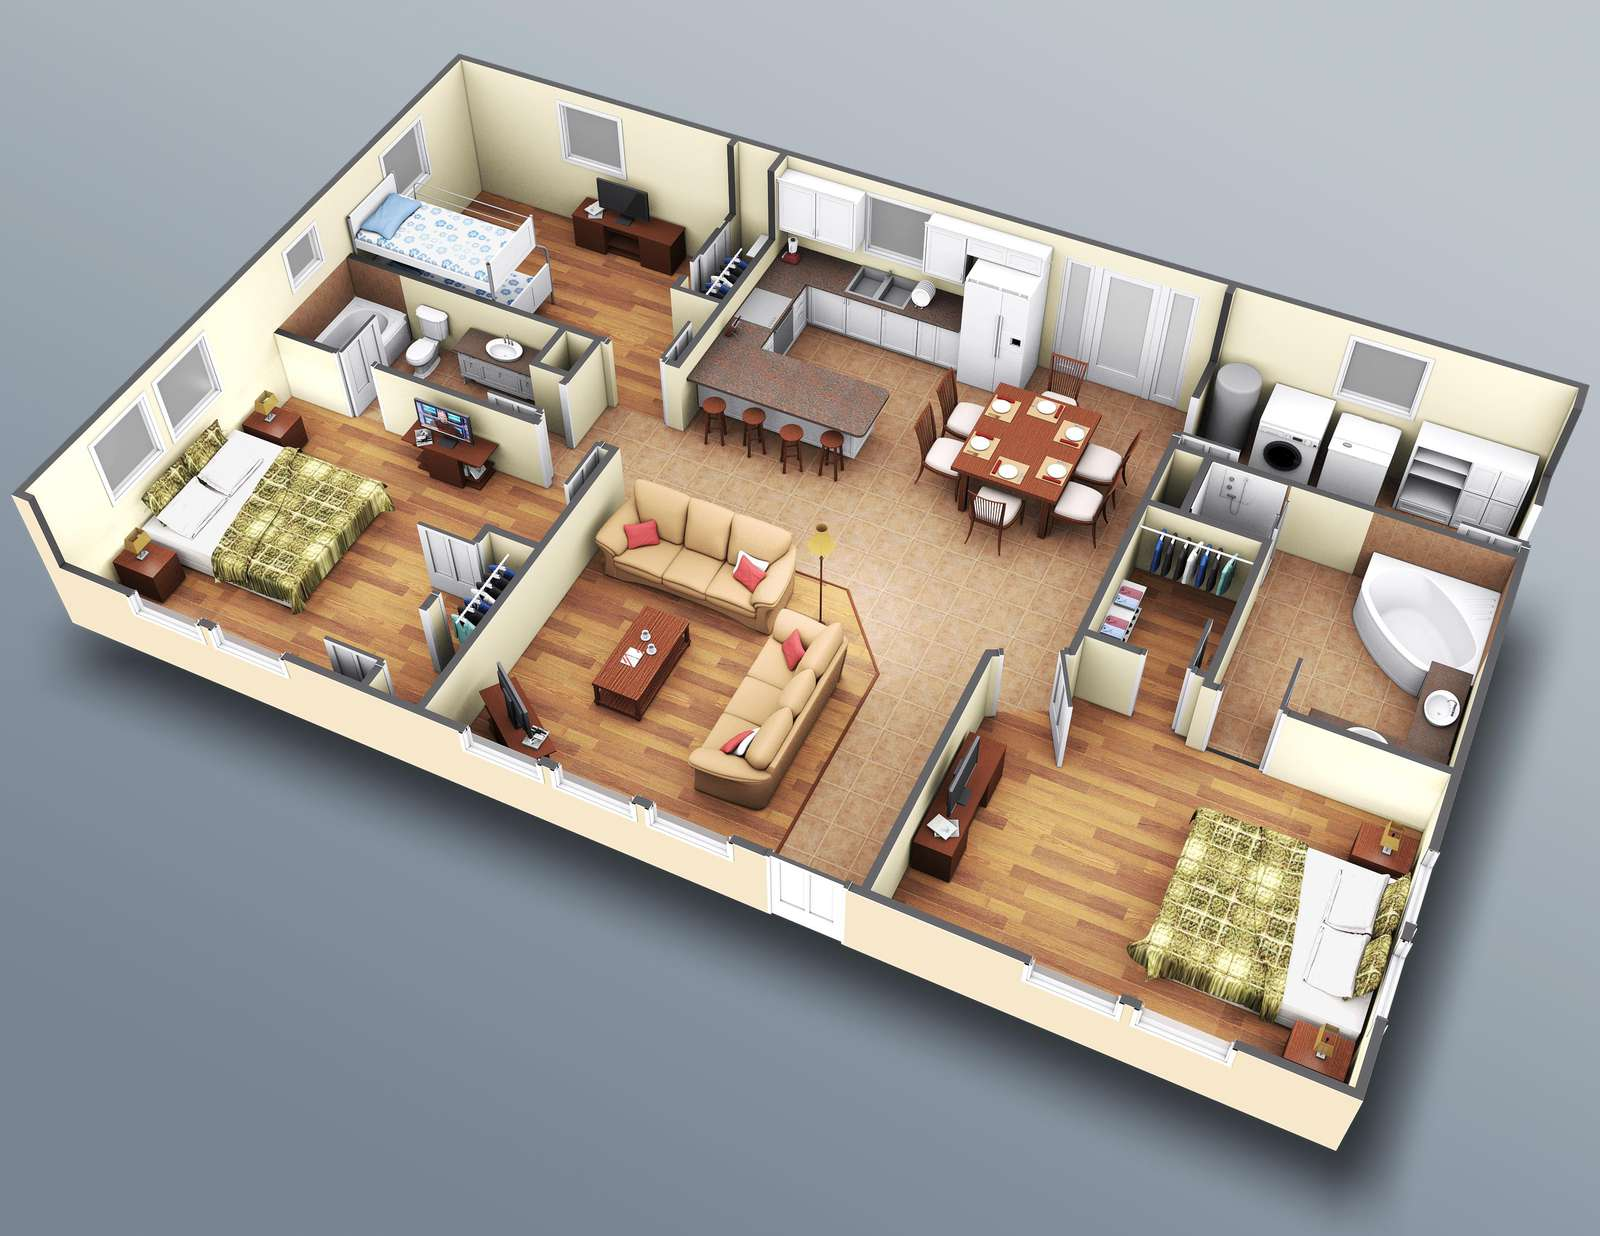 This is a very accurate rendering, right down to the furniture location.